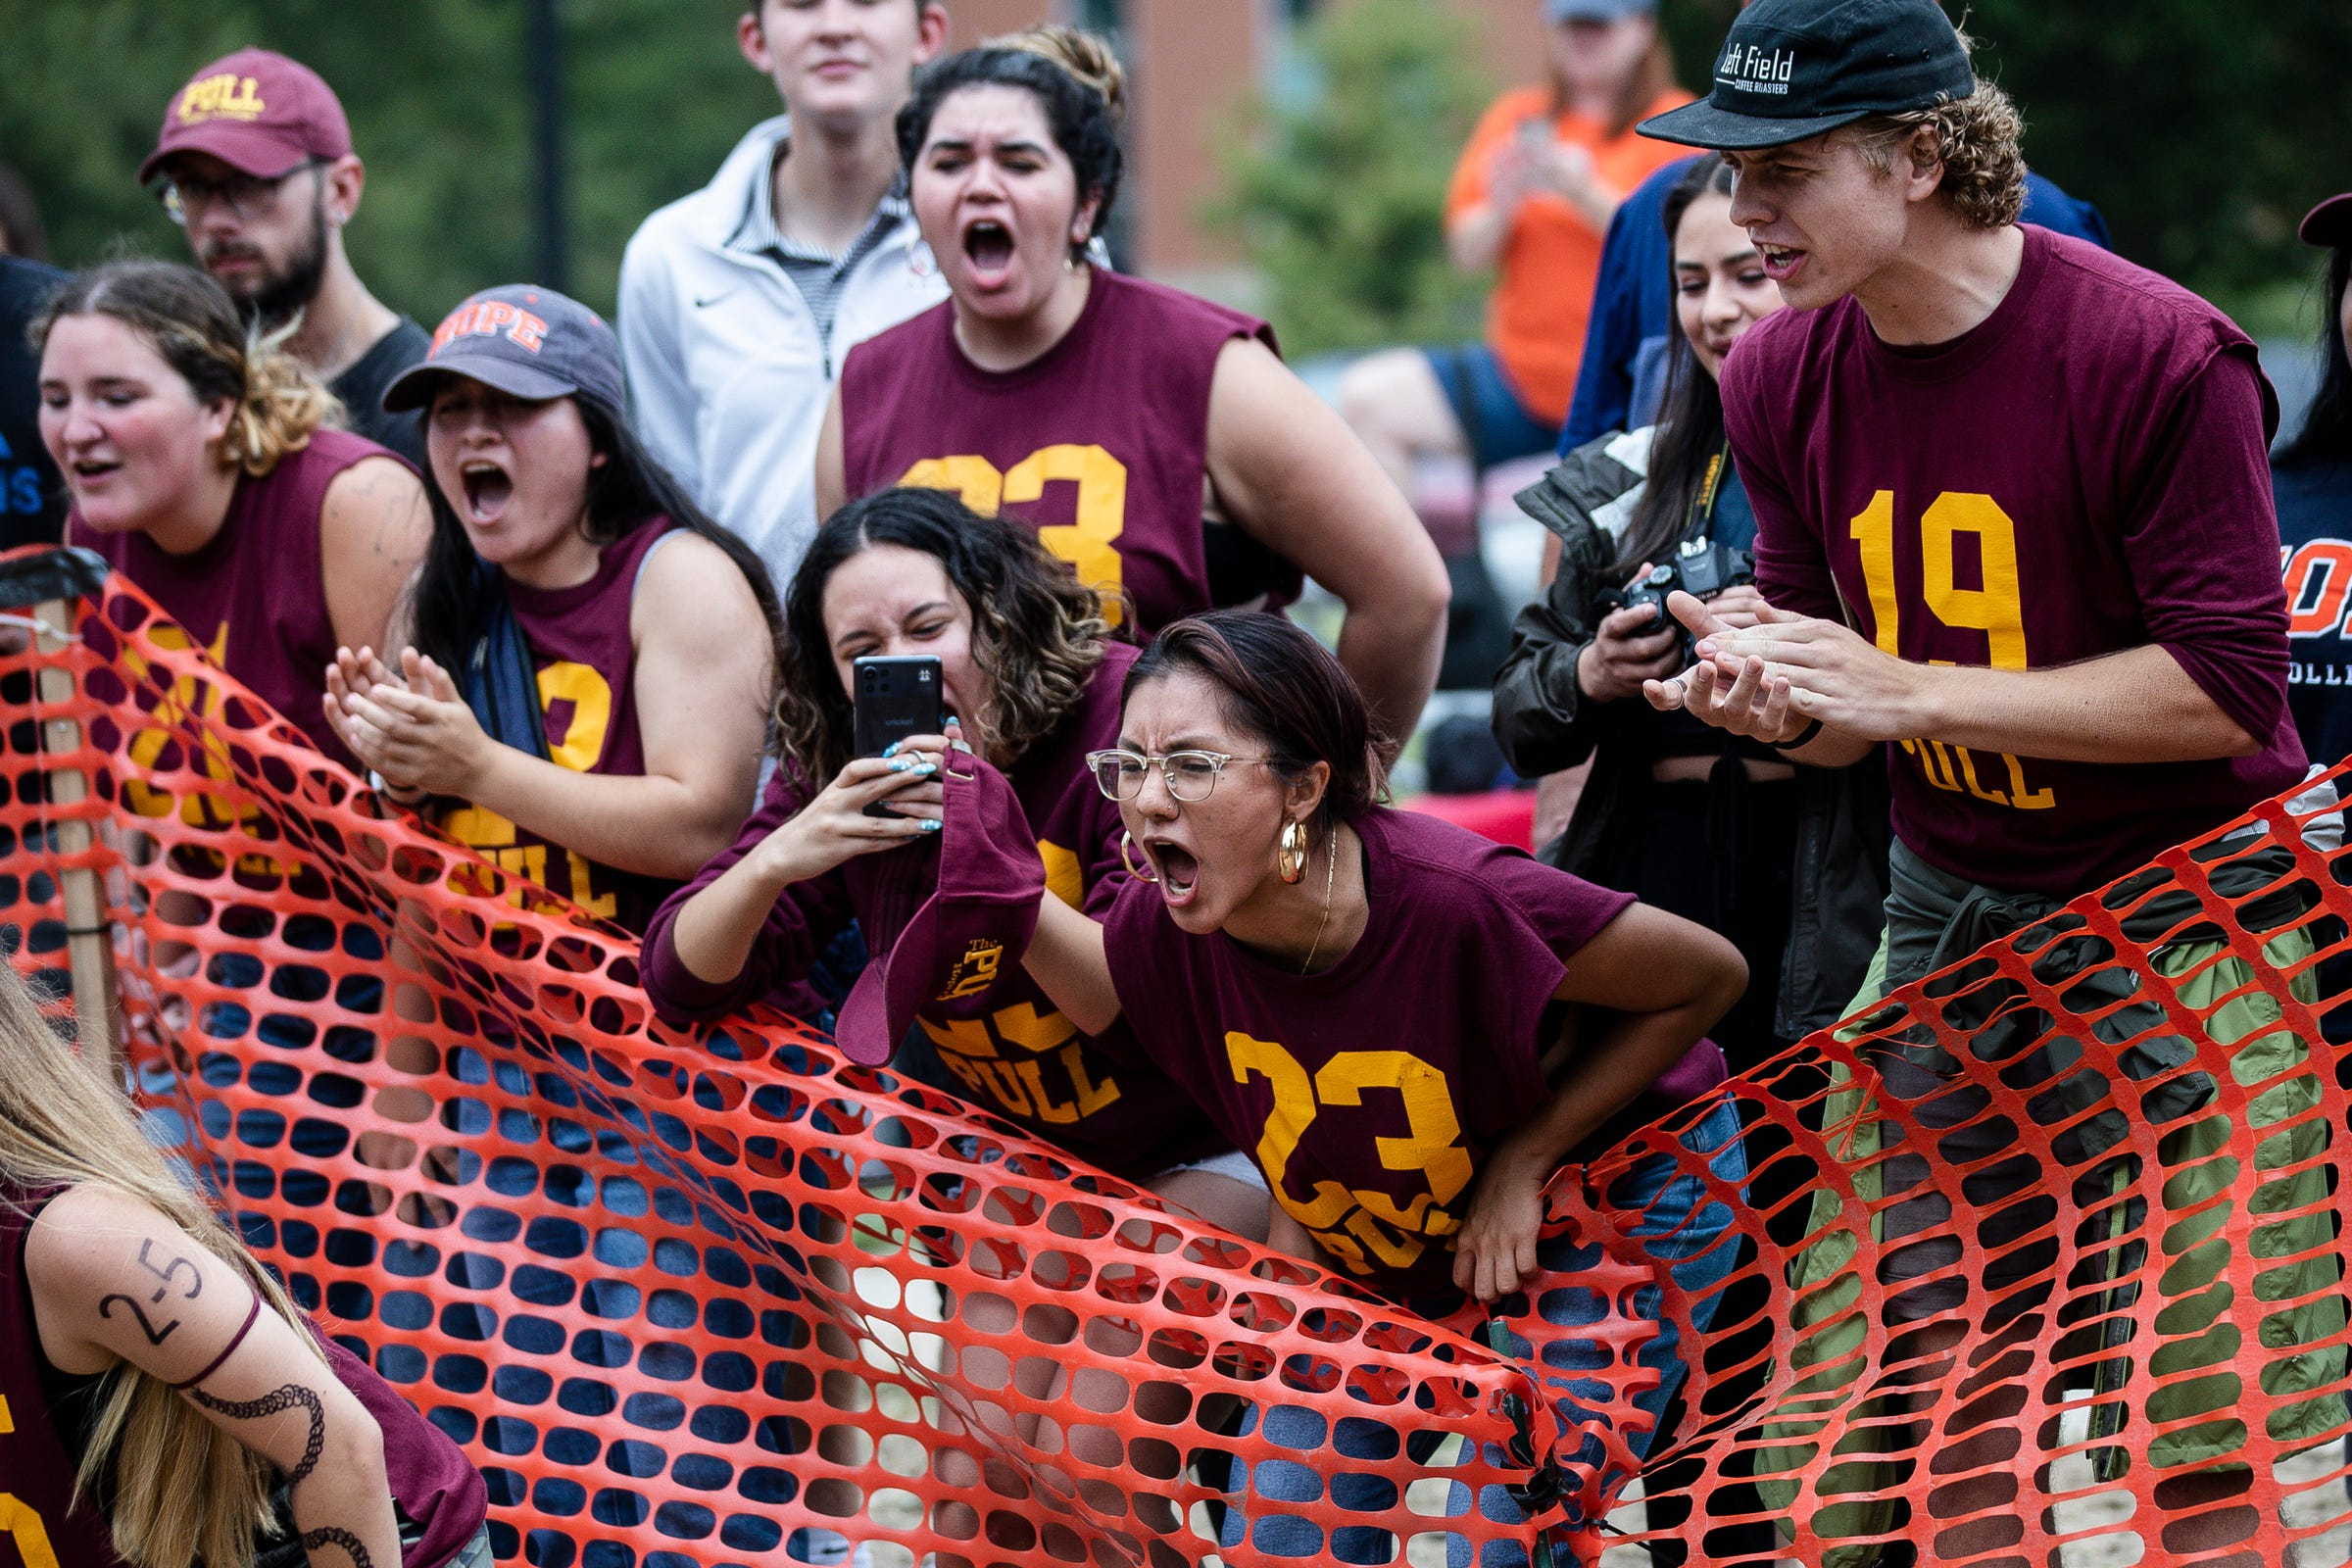 Odd year students and alumni cheer for the freshmen team the Pull, an annual tug-of-war between the freshmen and sophomore  classes at Hope College in Holland on Saturday, Oct. 2, 2021.